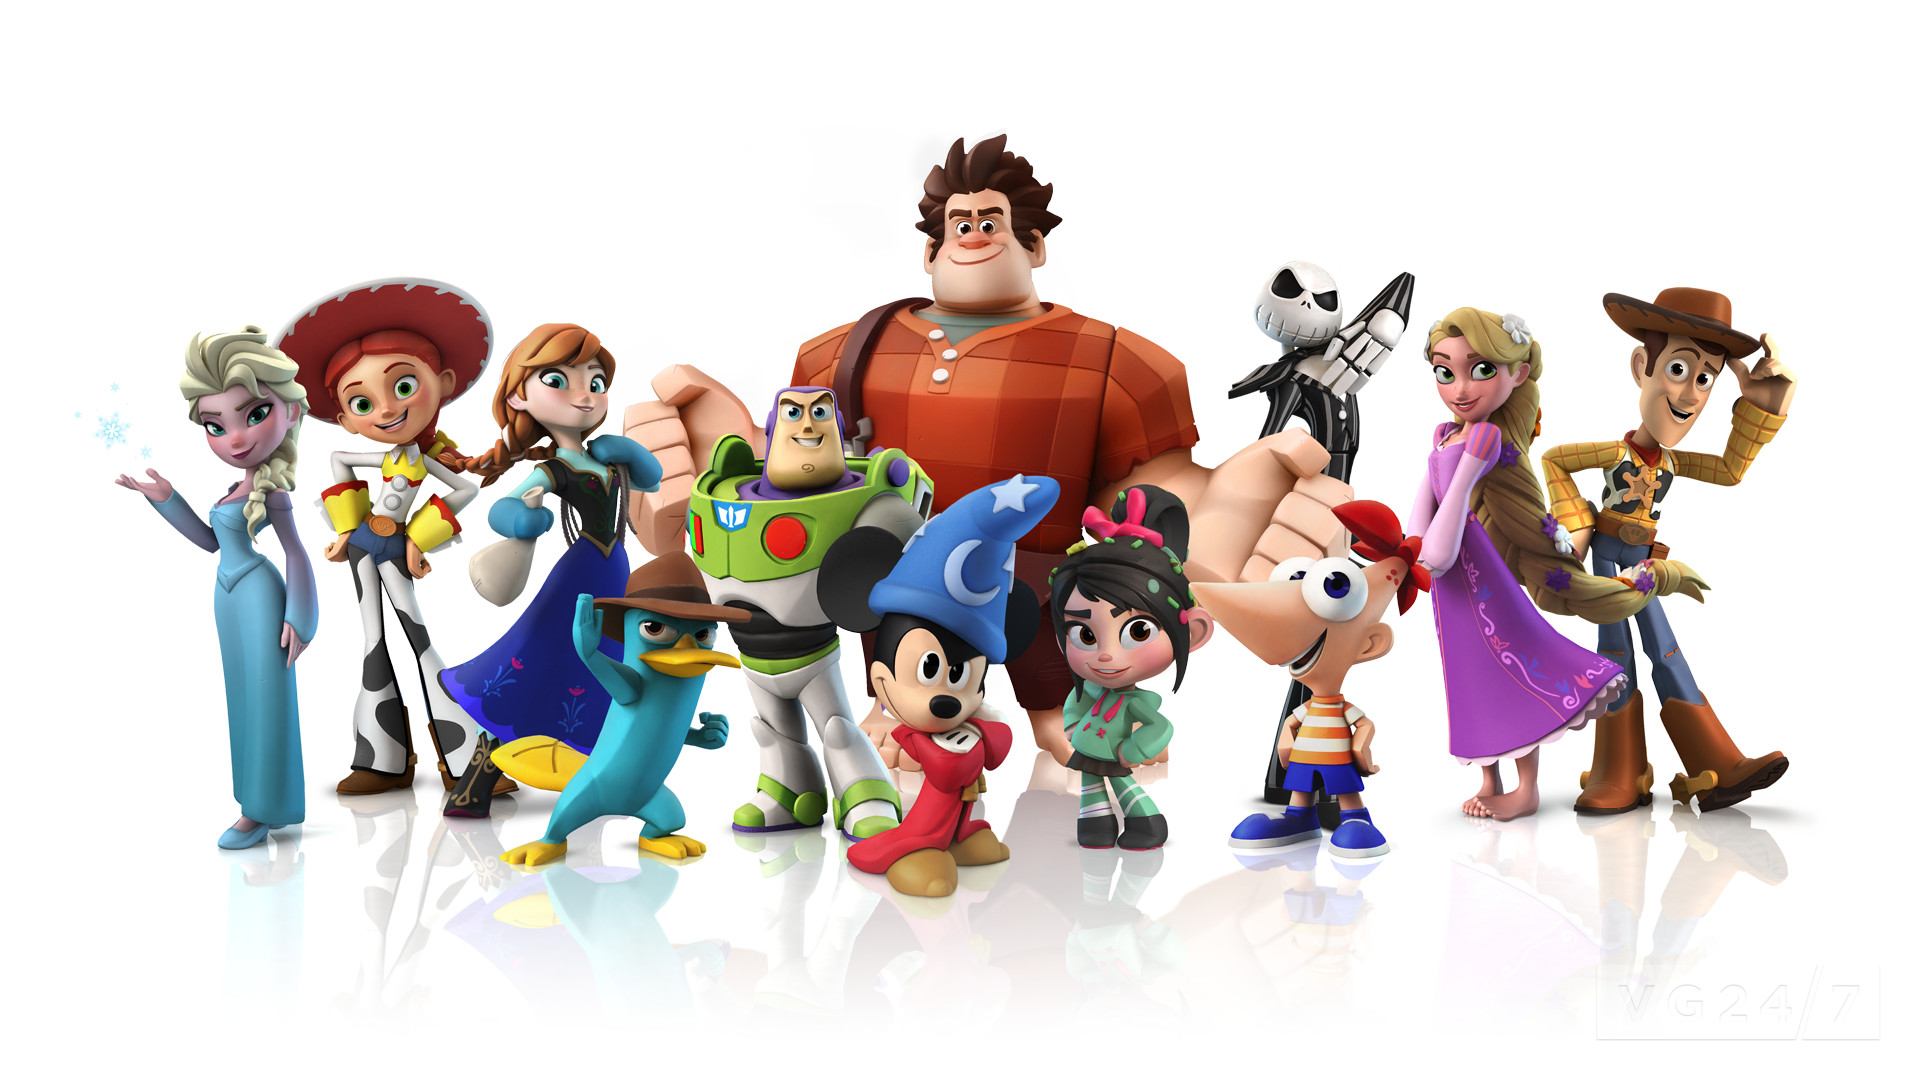 1920x1080 Disney-Infinity-Characters-TsumTsumPlush-com-for-all-of-